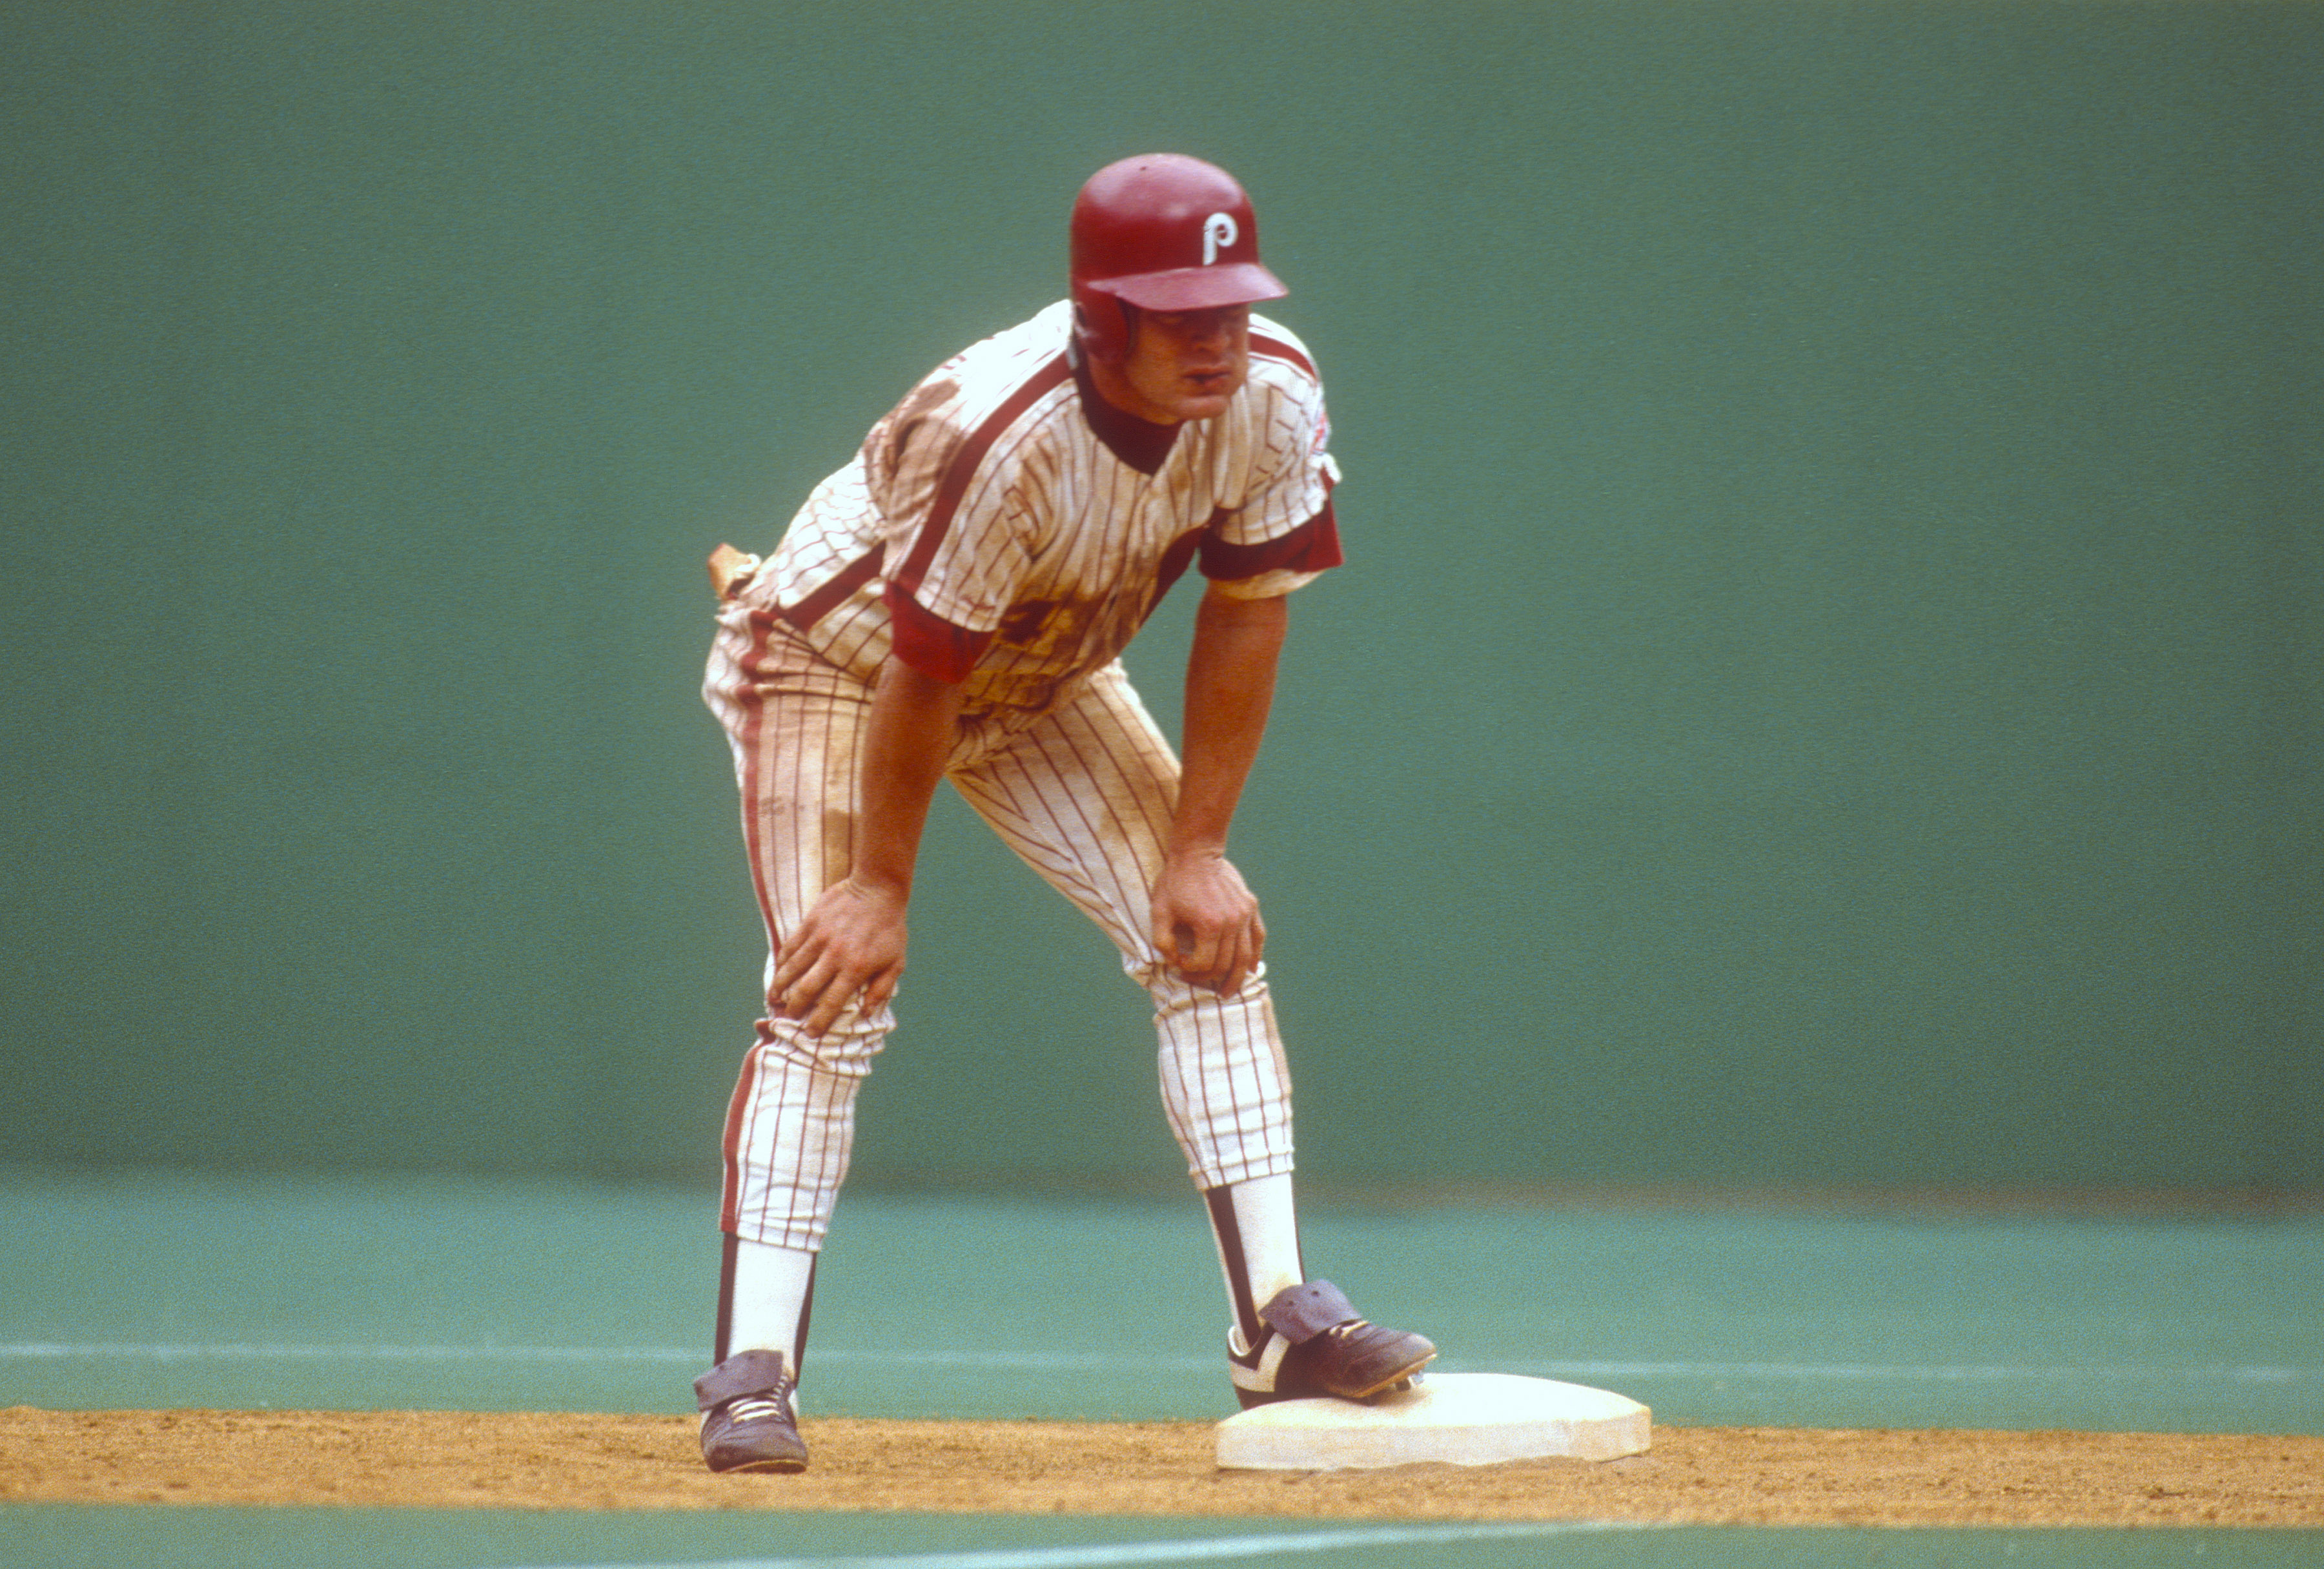 Lenny Dykstra Sets the Bar Pretty Low When Bragging About His Latest 3-Year Run